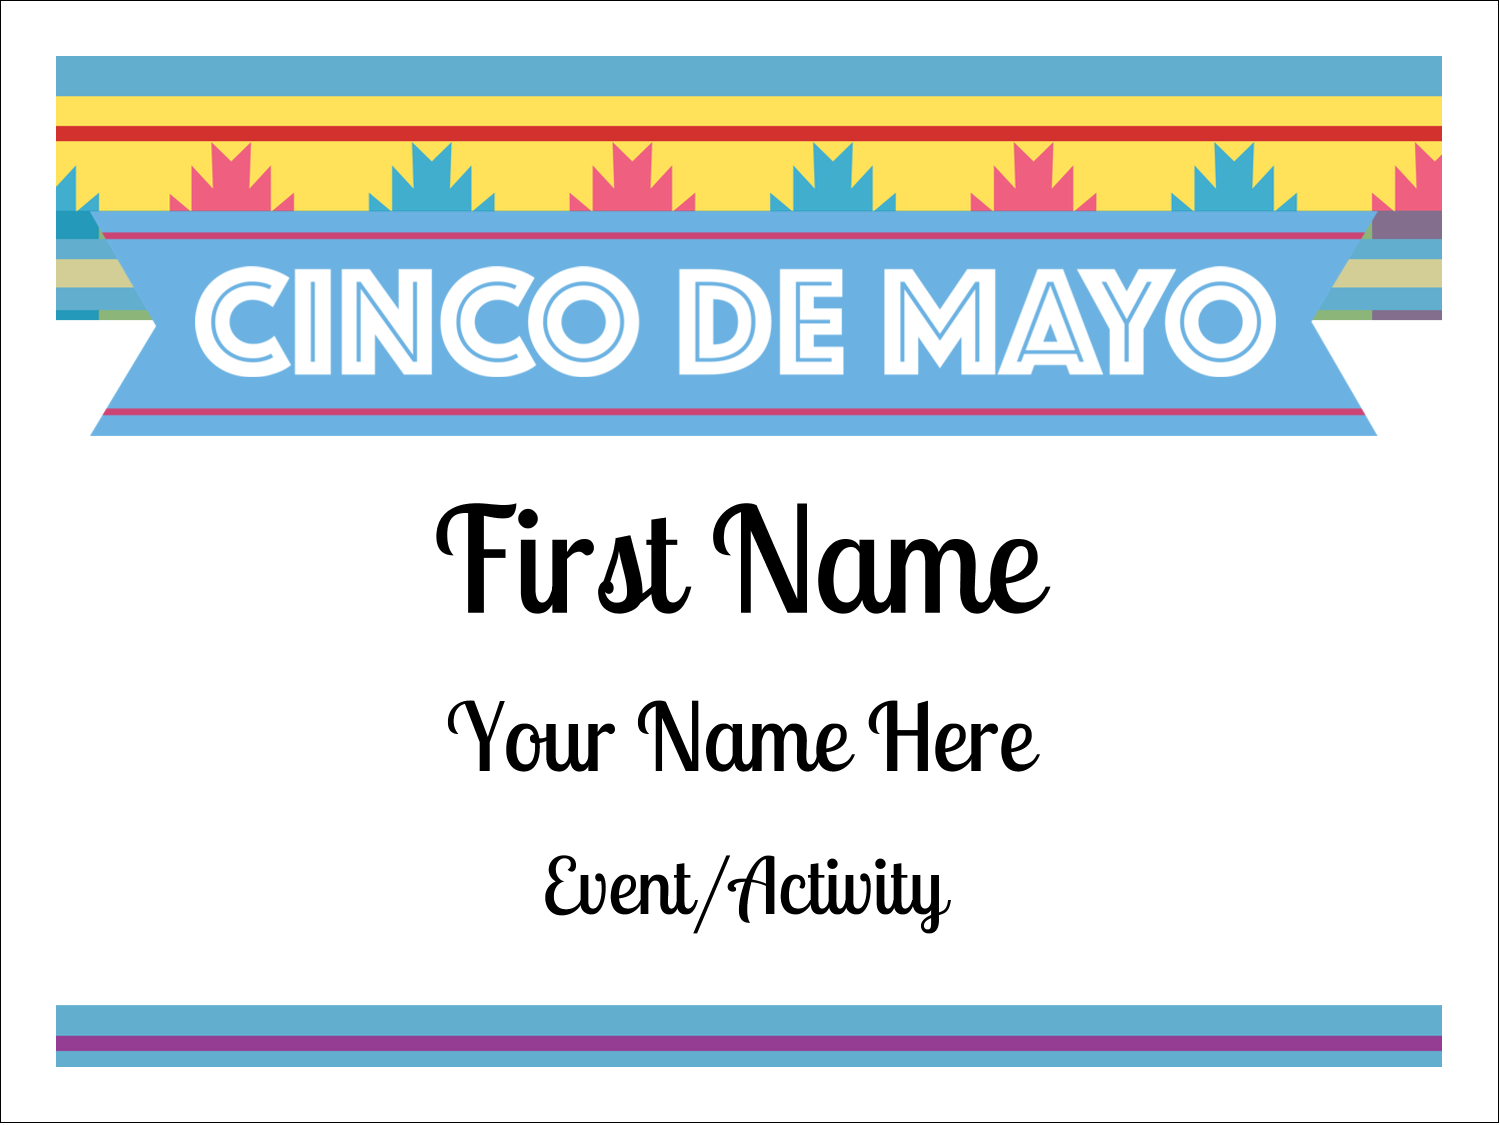 "3"" x 4"" Name Tags - Cinco de Mayo Serape"